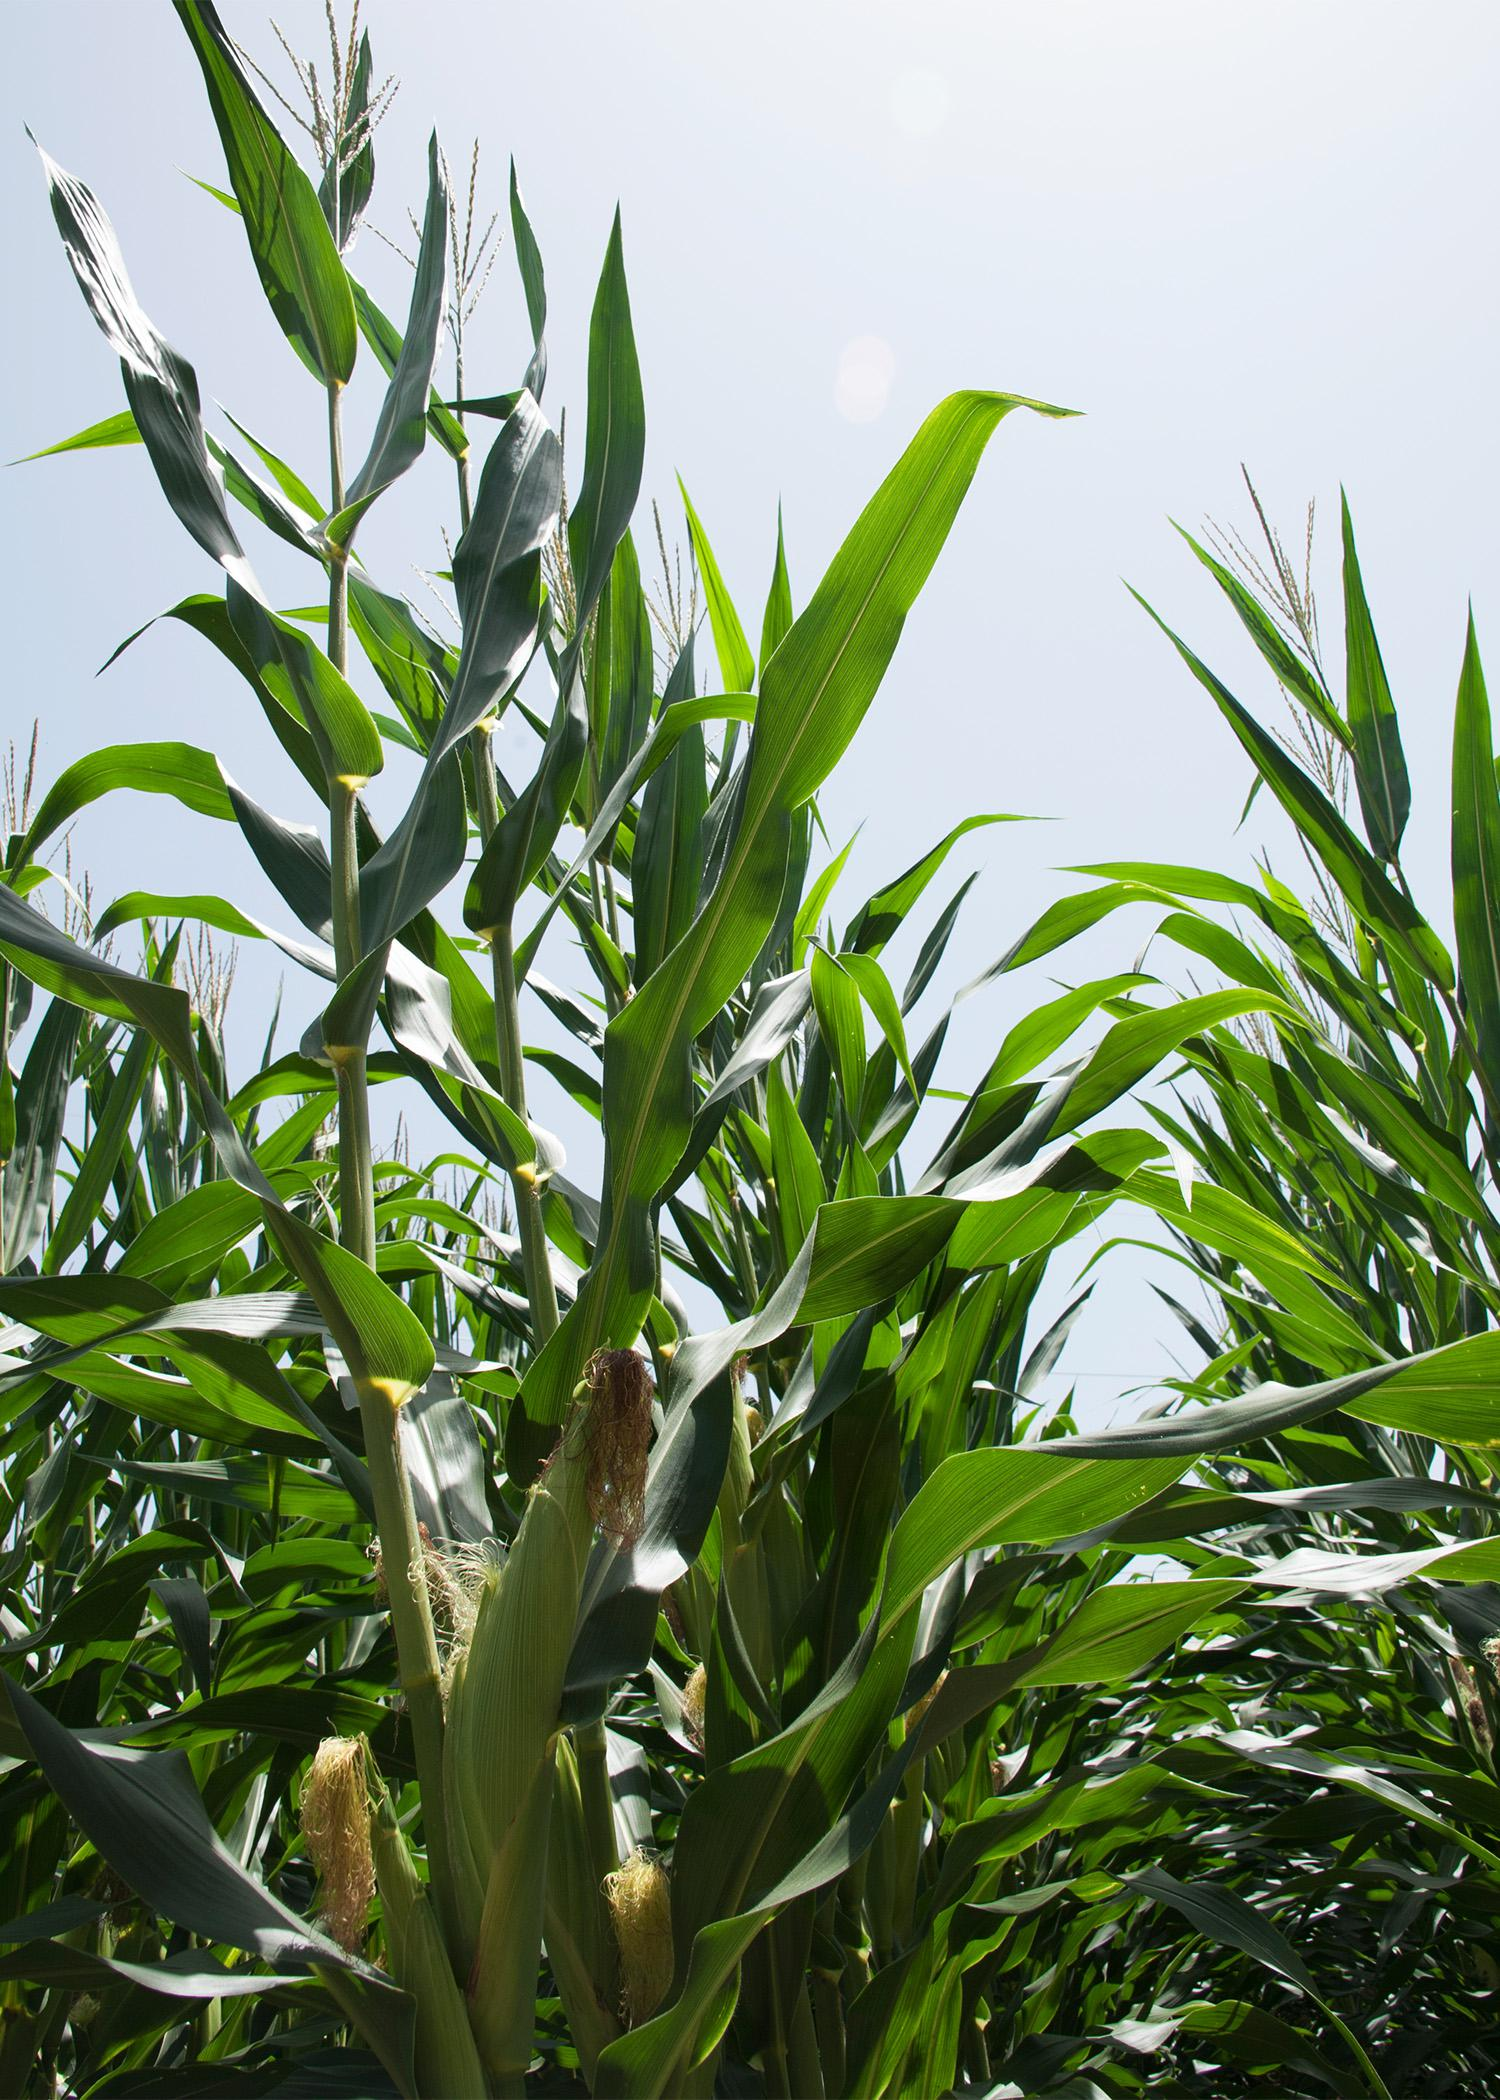 Corn acreage is down in Mississippi this year, but the other major row crops saw increases. This field was photographed July 1, 2014, at Mississippi State University's R.R. Foil Plant Science Research Center in Starkville, Mississippi. (Photo by MSU Ag Communications/Kat Lawrence)